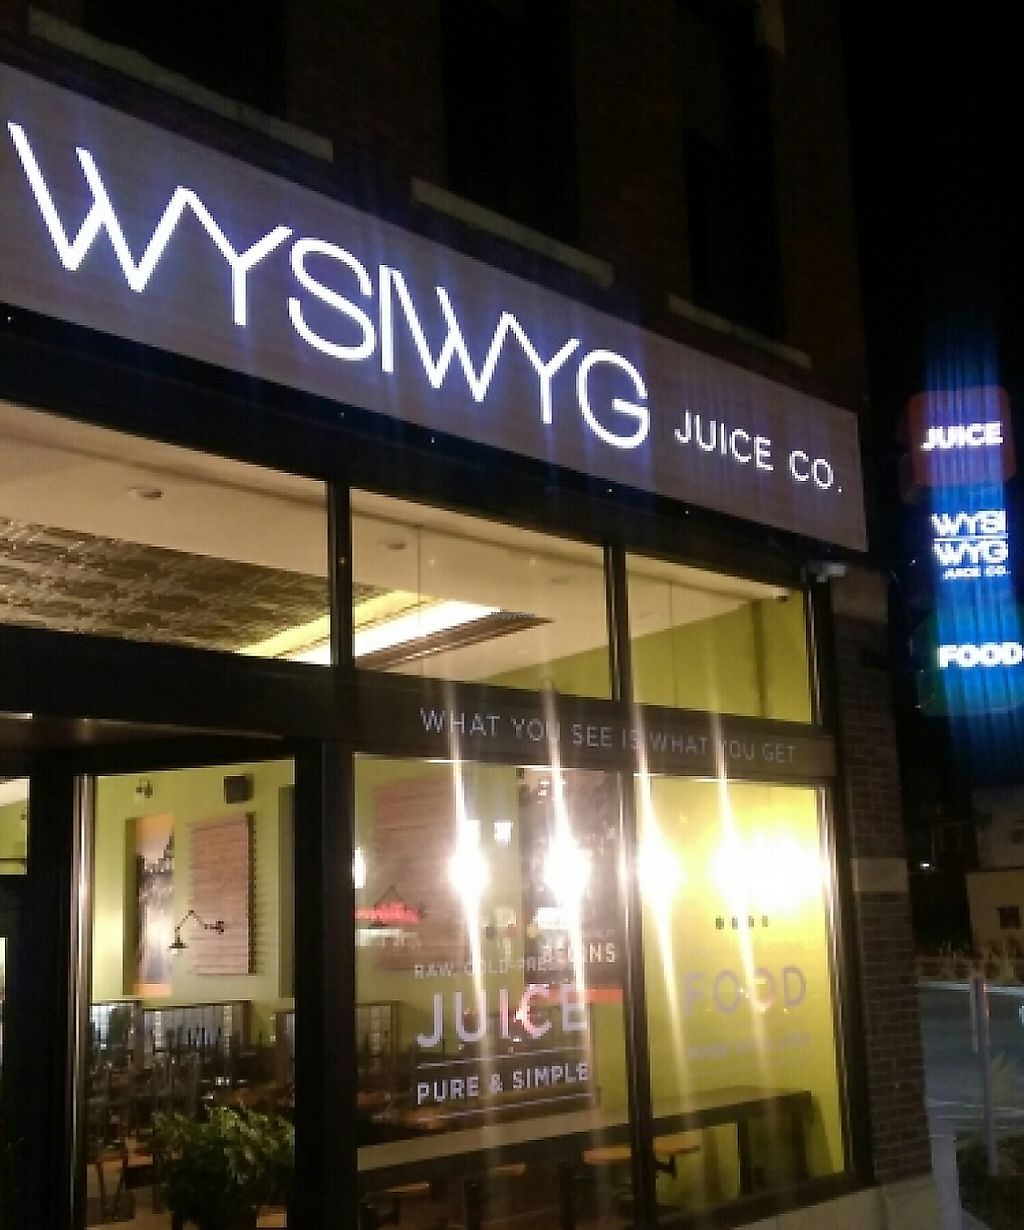 """Photo of WYSIWYG Juice  by <a href=""""/members/profile/andreathinks"""">andreathinks</a> <br/>Downtown Mankato, on Warren and S Front Streets <br/> April 15, 2016  - <a href='/contact/abuse/image/72456/206141'>Report</a>"""